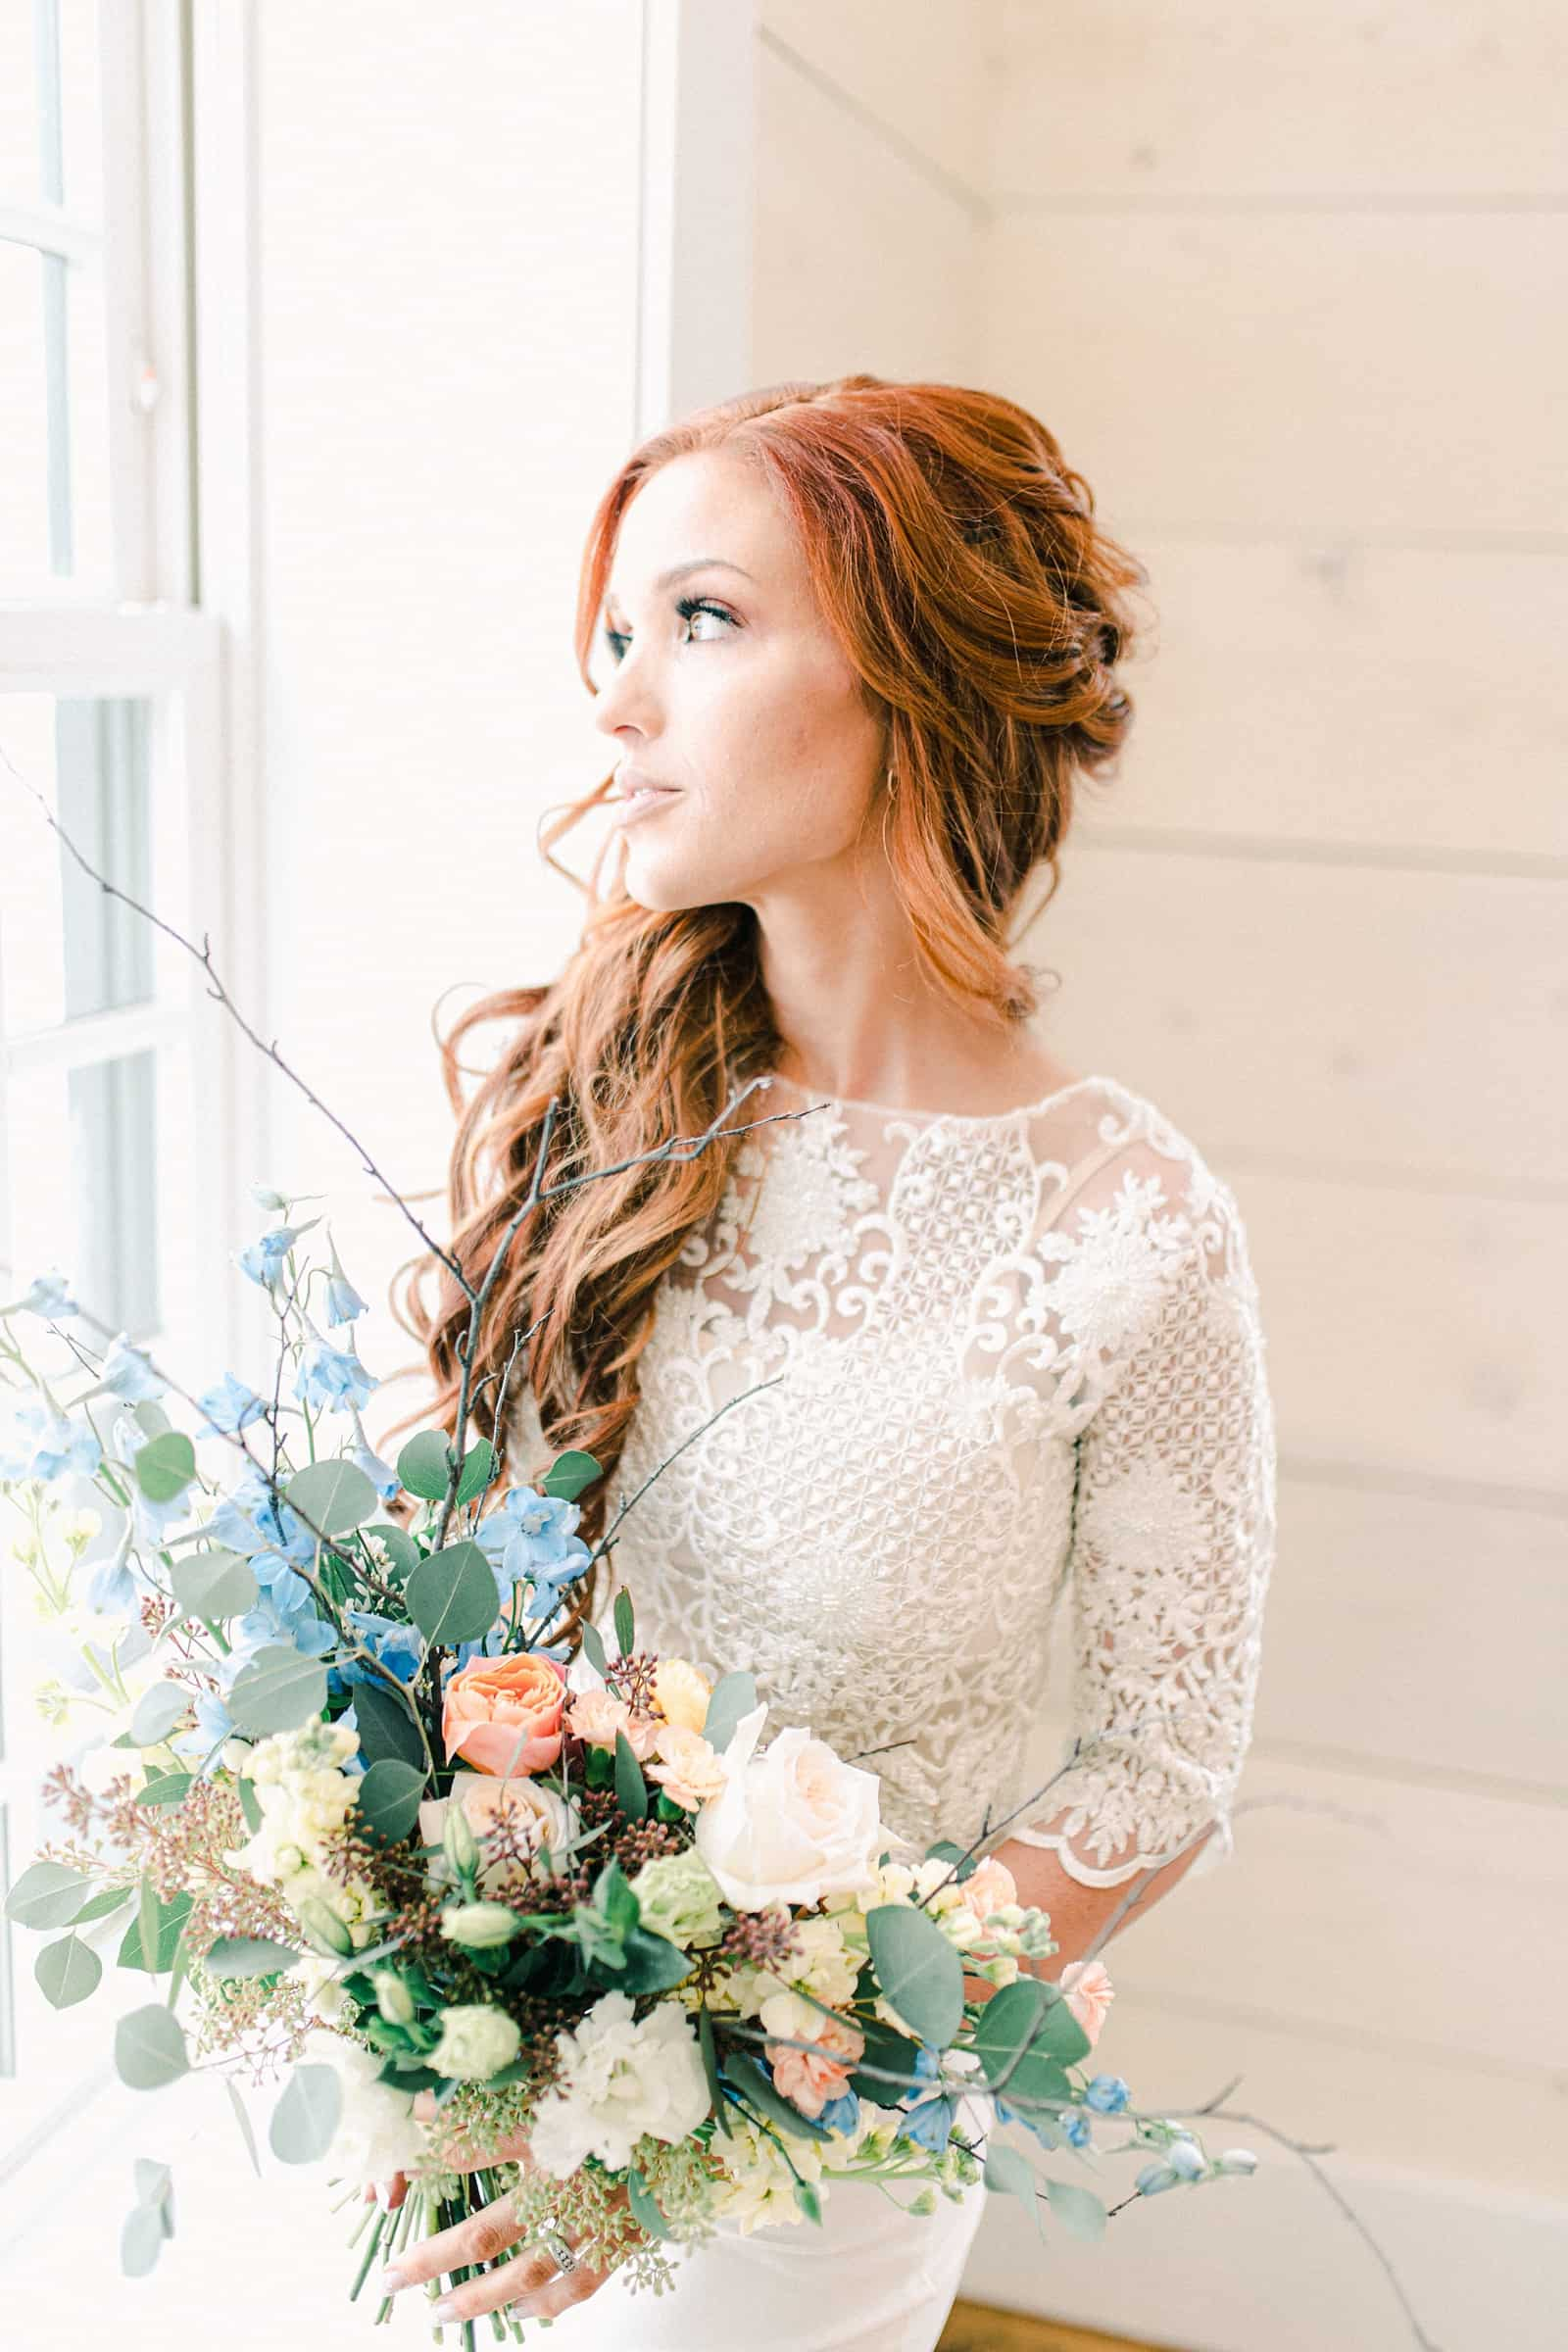 Bride with long lace sleeves looks out window holding wedding bouquet with pastel colors, blue, pink, orange, peach flowers